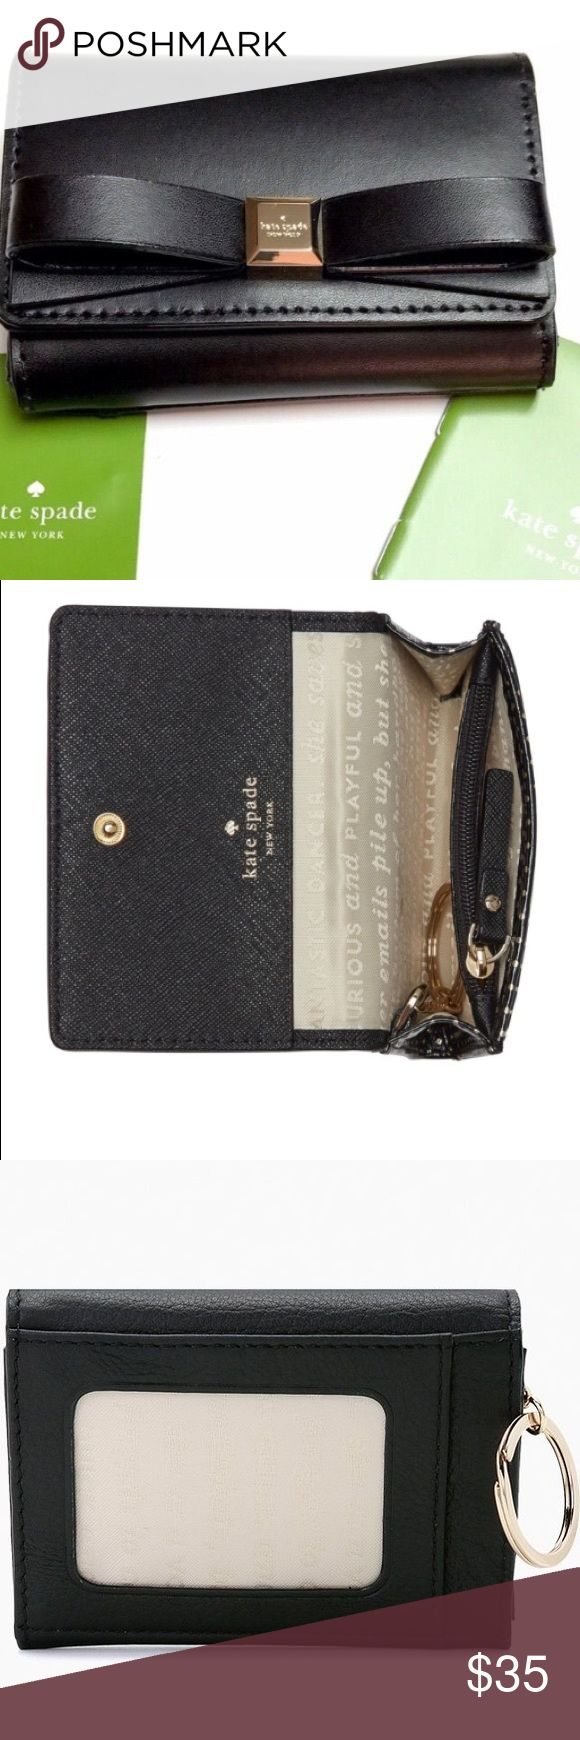 Kate Spade Black Darla Wallet Super cute authentic kate spade wallet with keychain. Picture window for id on the backside credit card holder on the inside with zipper closure for coins and slot for bills. New with tags. measurements:3h x 4.5 w x 1d. Attached key chain inside. kate spade Bags Wallets